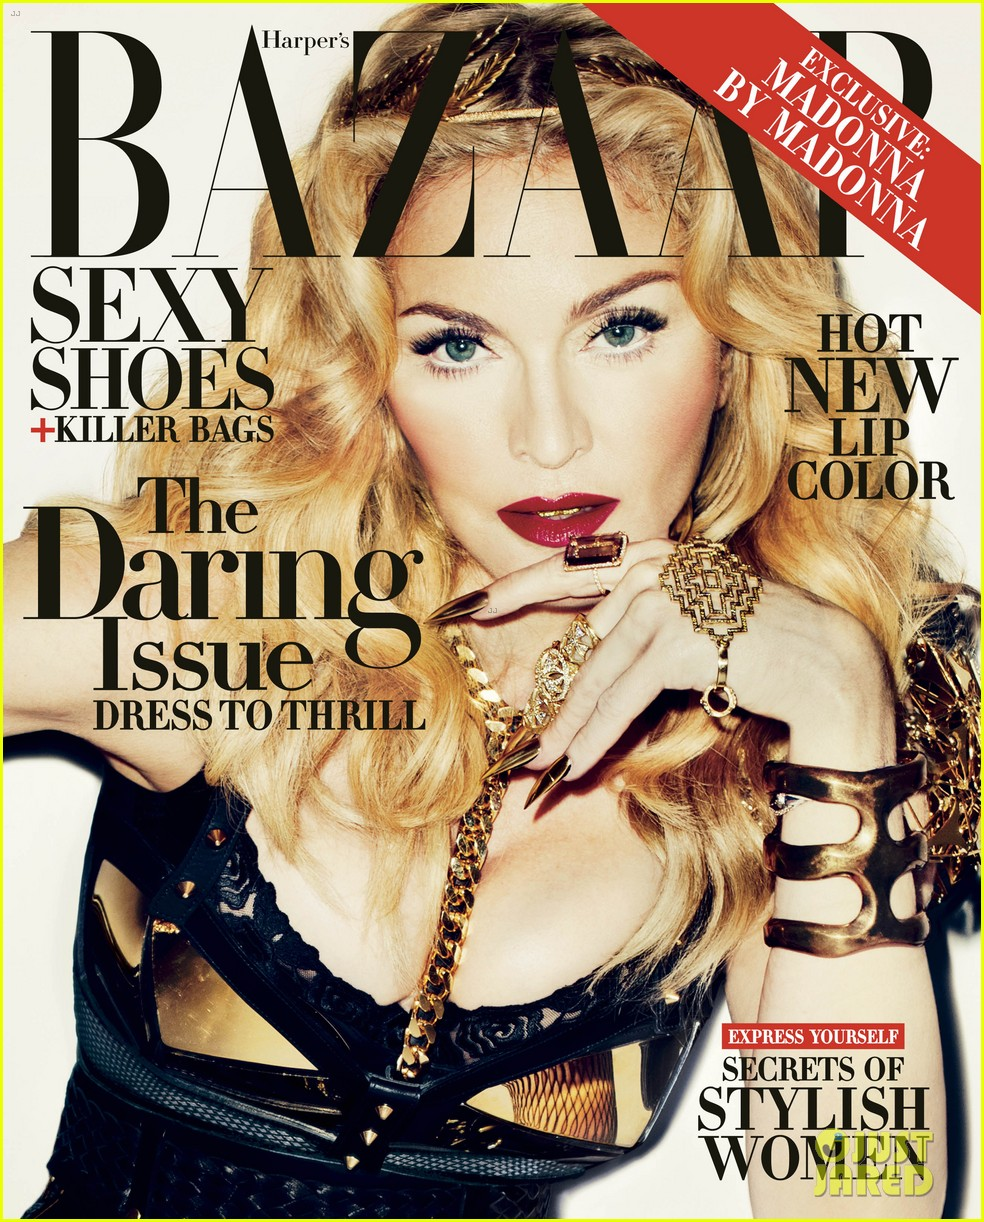 madonna covers harpers bazaar daring issue for november 03